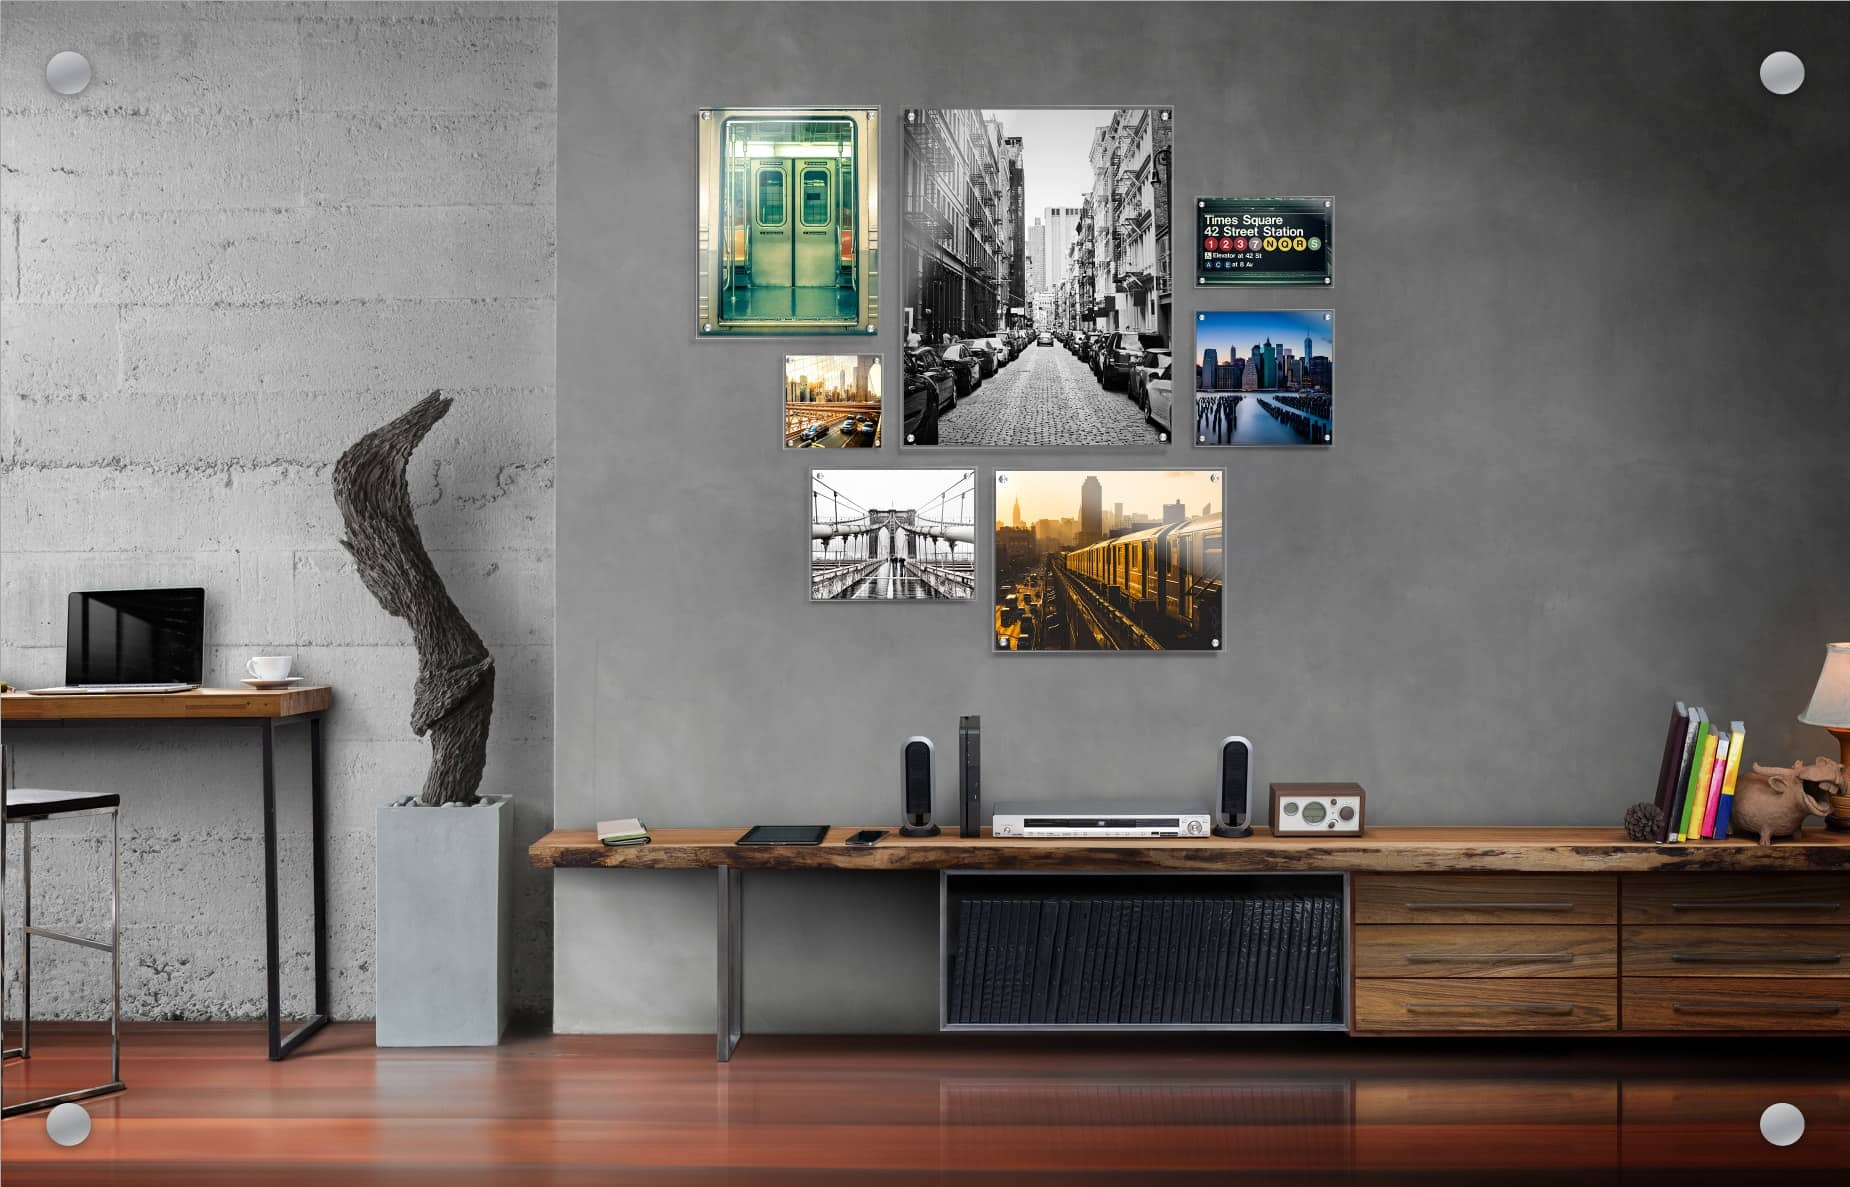 Sample image of Wallkeepers app in action. Seven photos in a grid overlayed on to an interior wall.